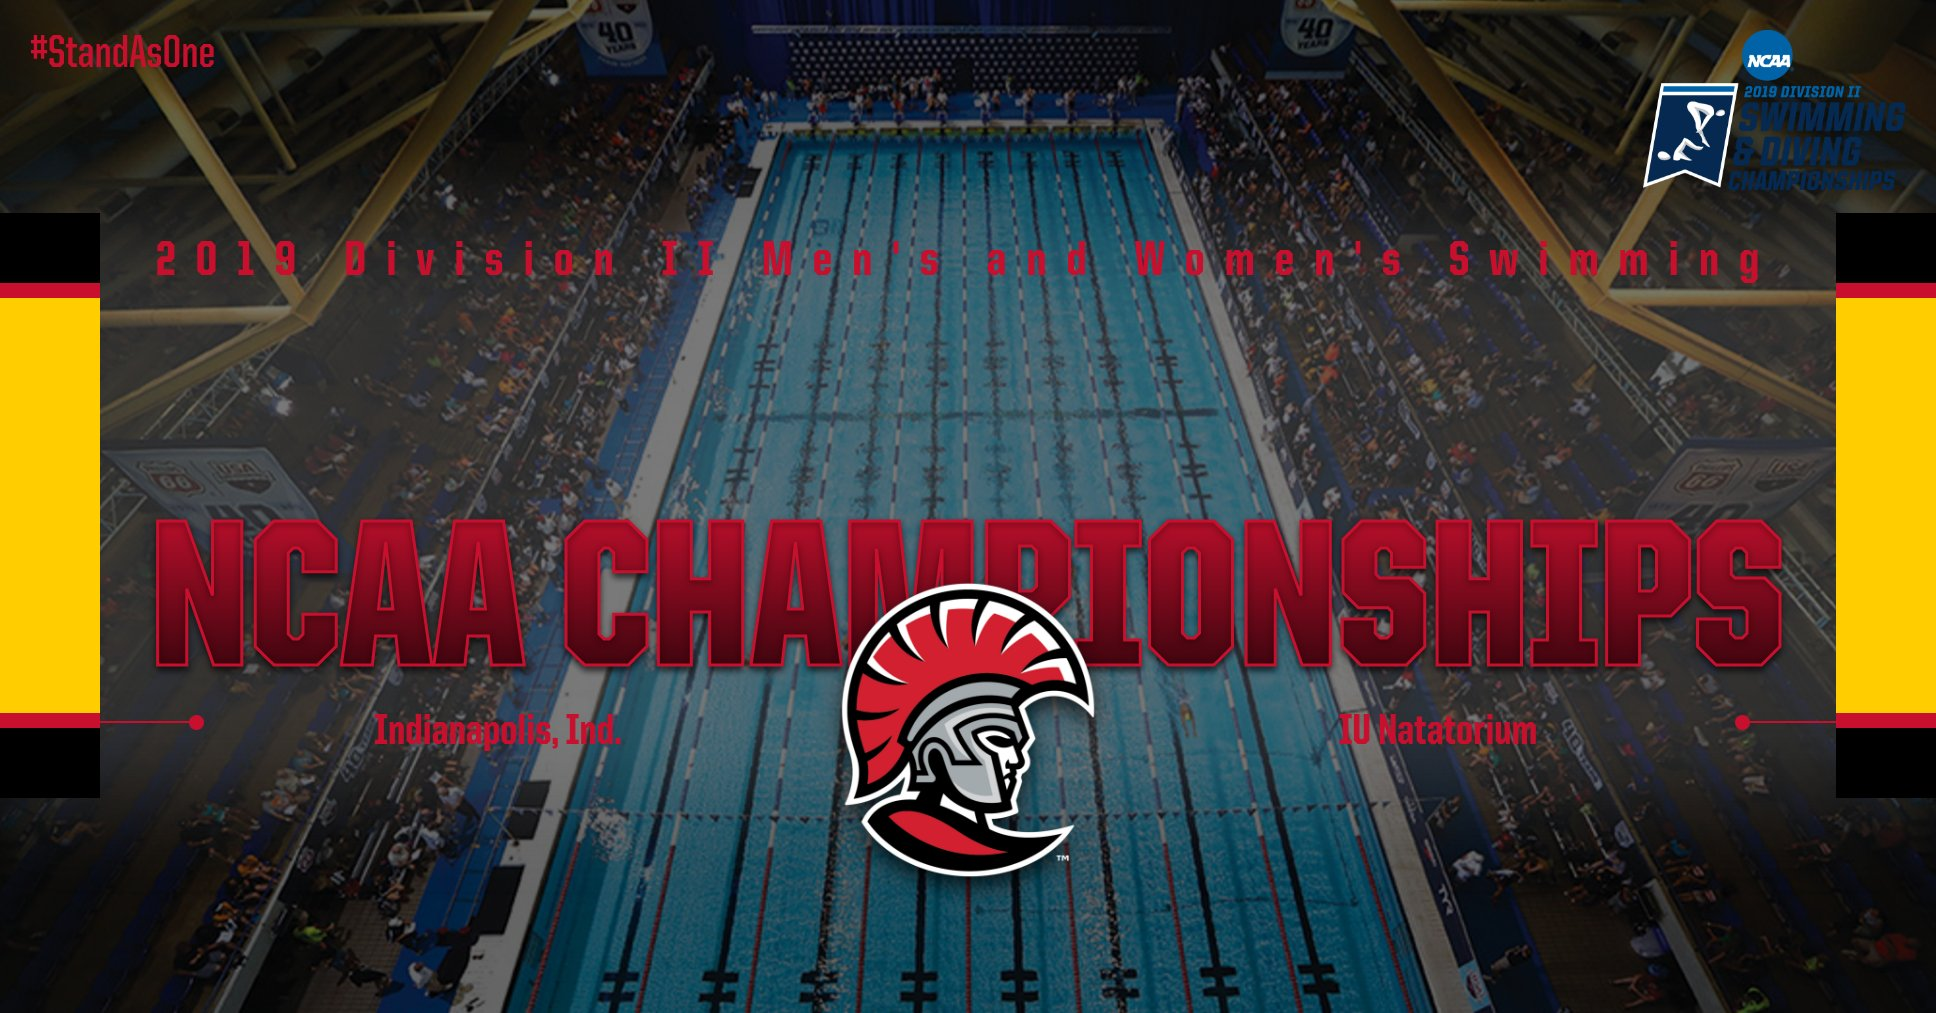 Tampa Swimming Set for NCAA Championships